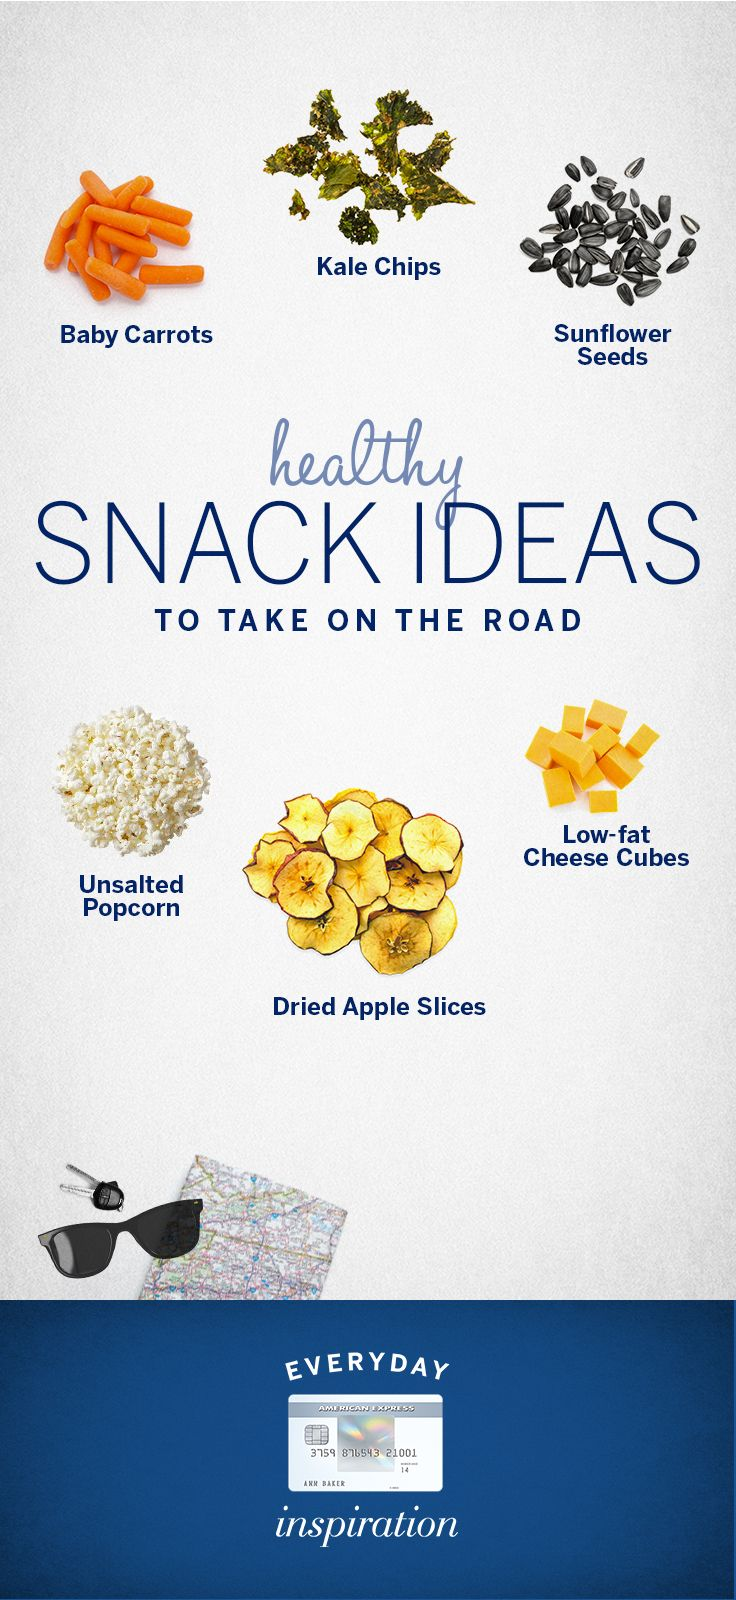 A long car ride doesn't have to mean fast food. Here are 6 healthy snacks even kids will love so you can relax and focus on making #EveryDayMoments